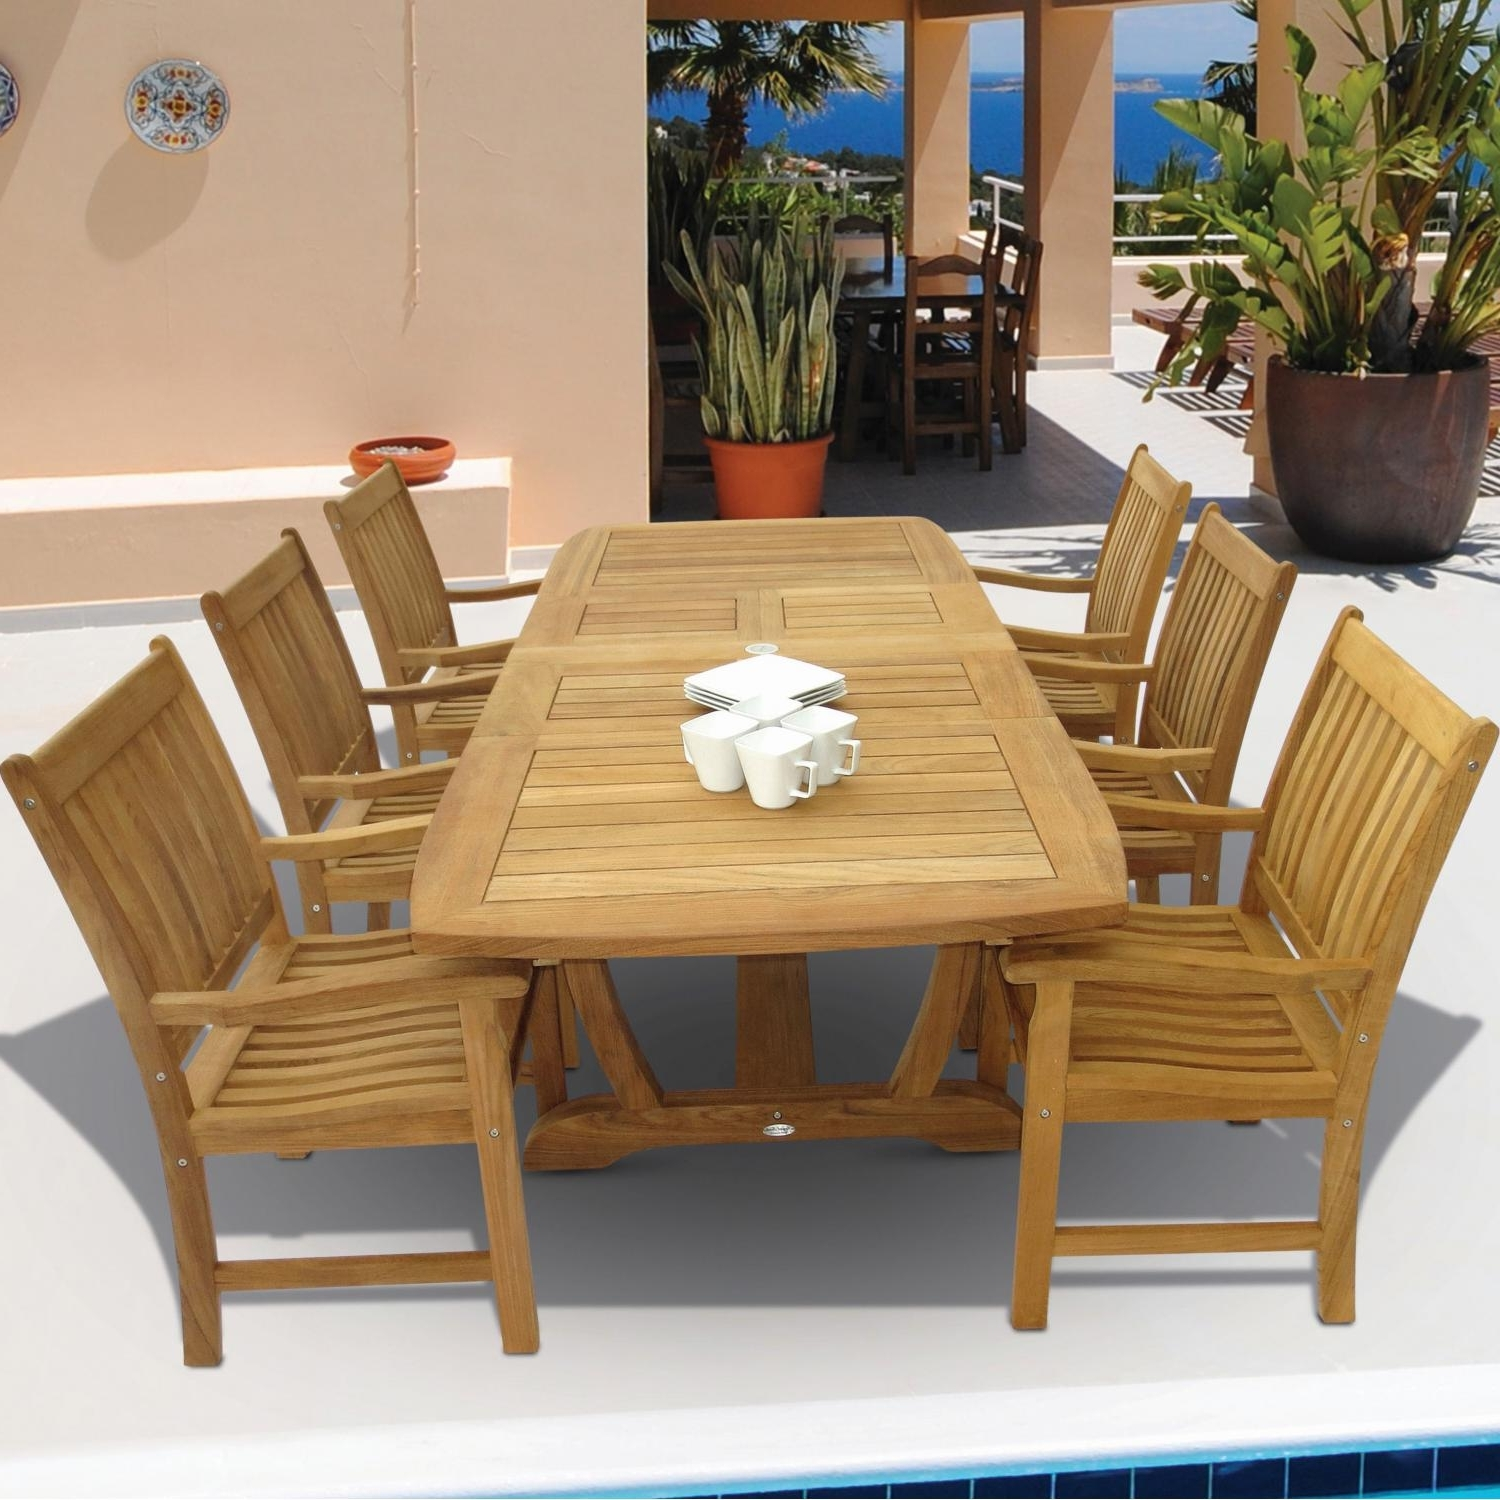 Craftsman 7 Piece Rectangle Extension Dining Sets With Arm & Side Chairs Pertaining To Current Compass 7 Piece Teak Patio Dining Set W/ 64 X 43 Inch Rectangular (View 7 of 25)